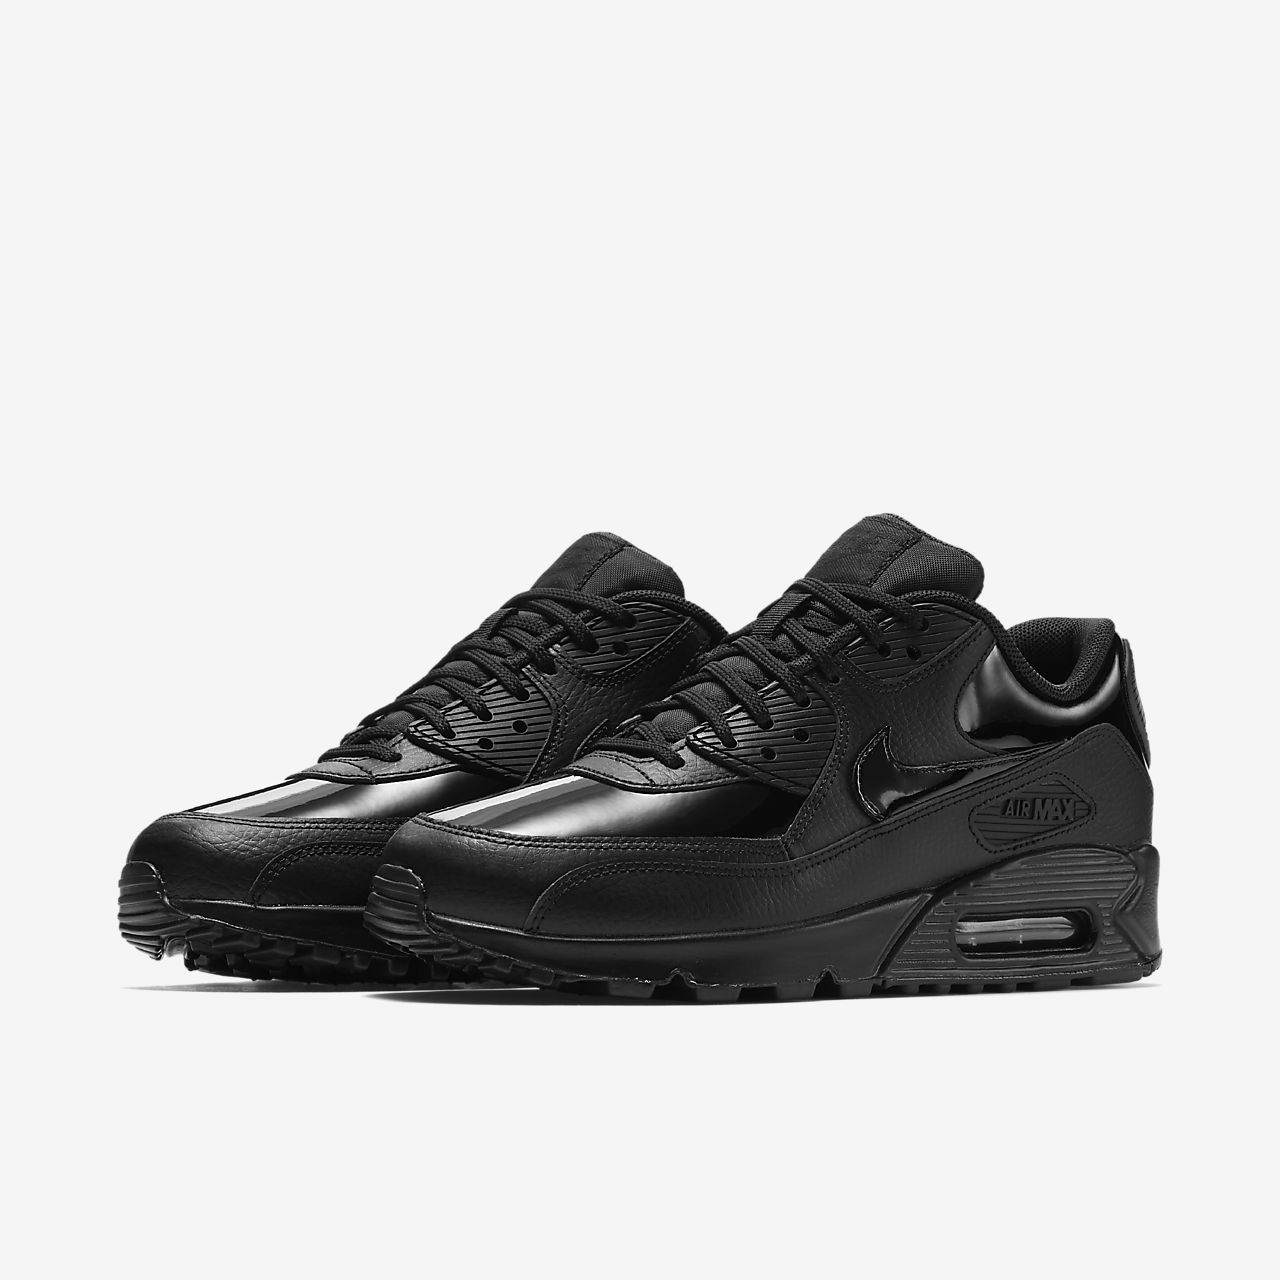 ... Chaussure Nike Air Max 90 Patent pour Femme